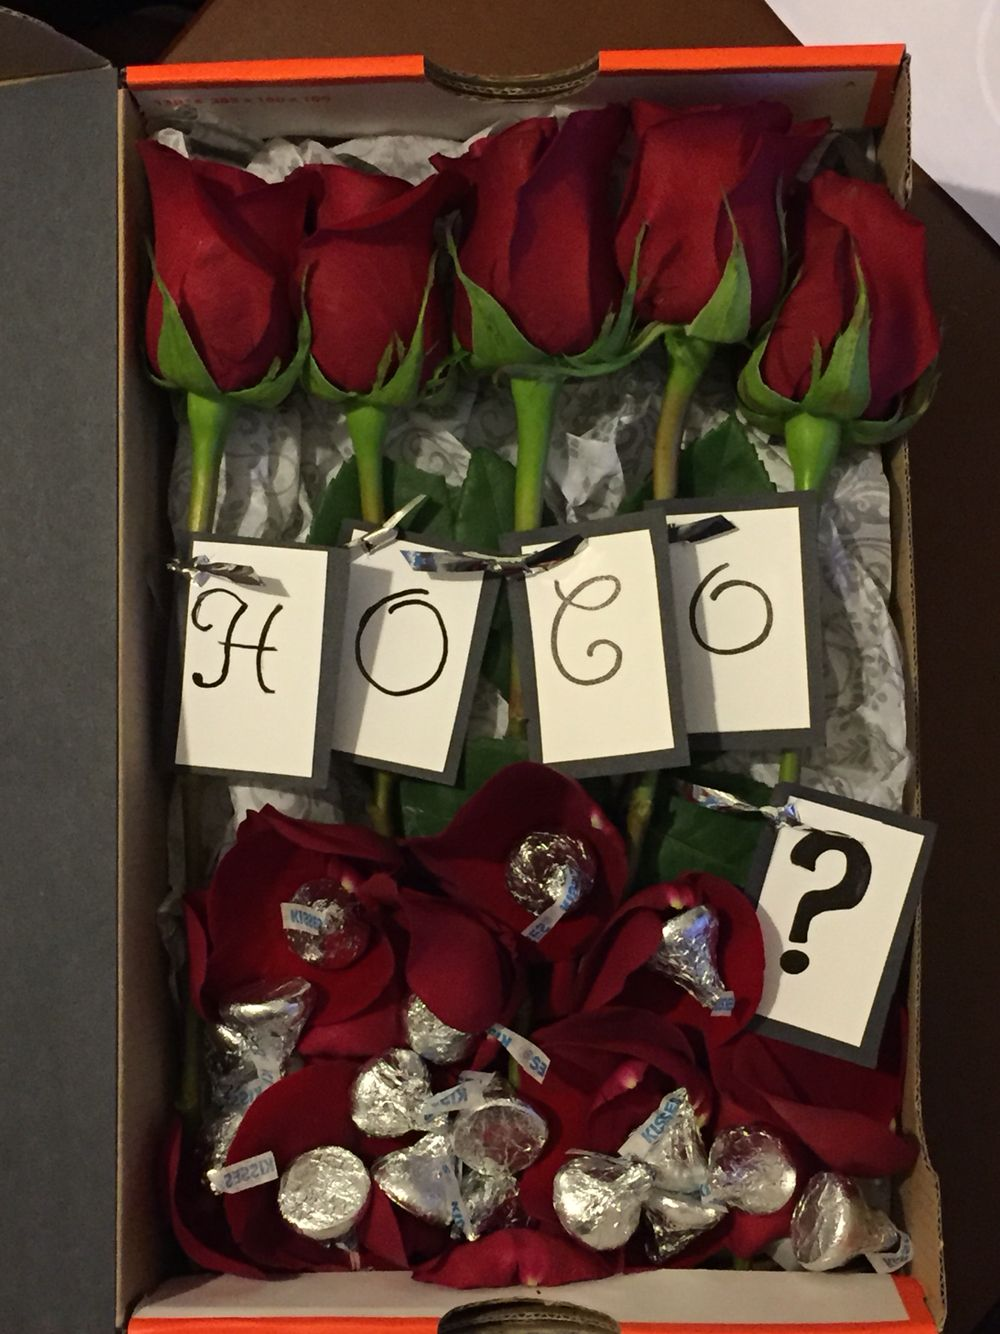 30+ Creative Prom Proposal Ideas for Guys - Cute Promposal ... |Creative Prom Proposal Ideas